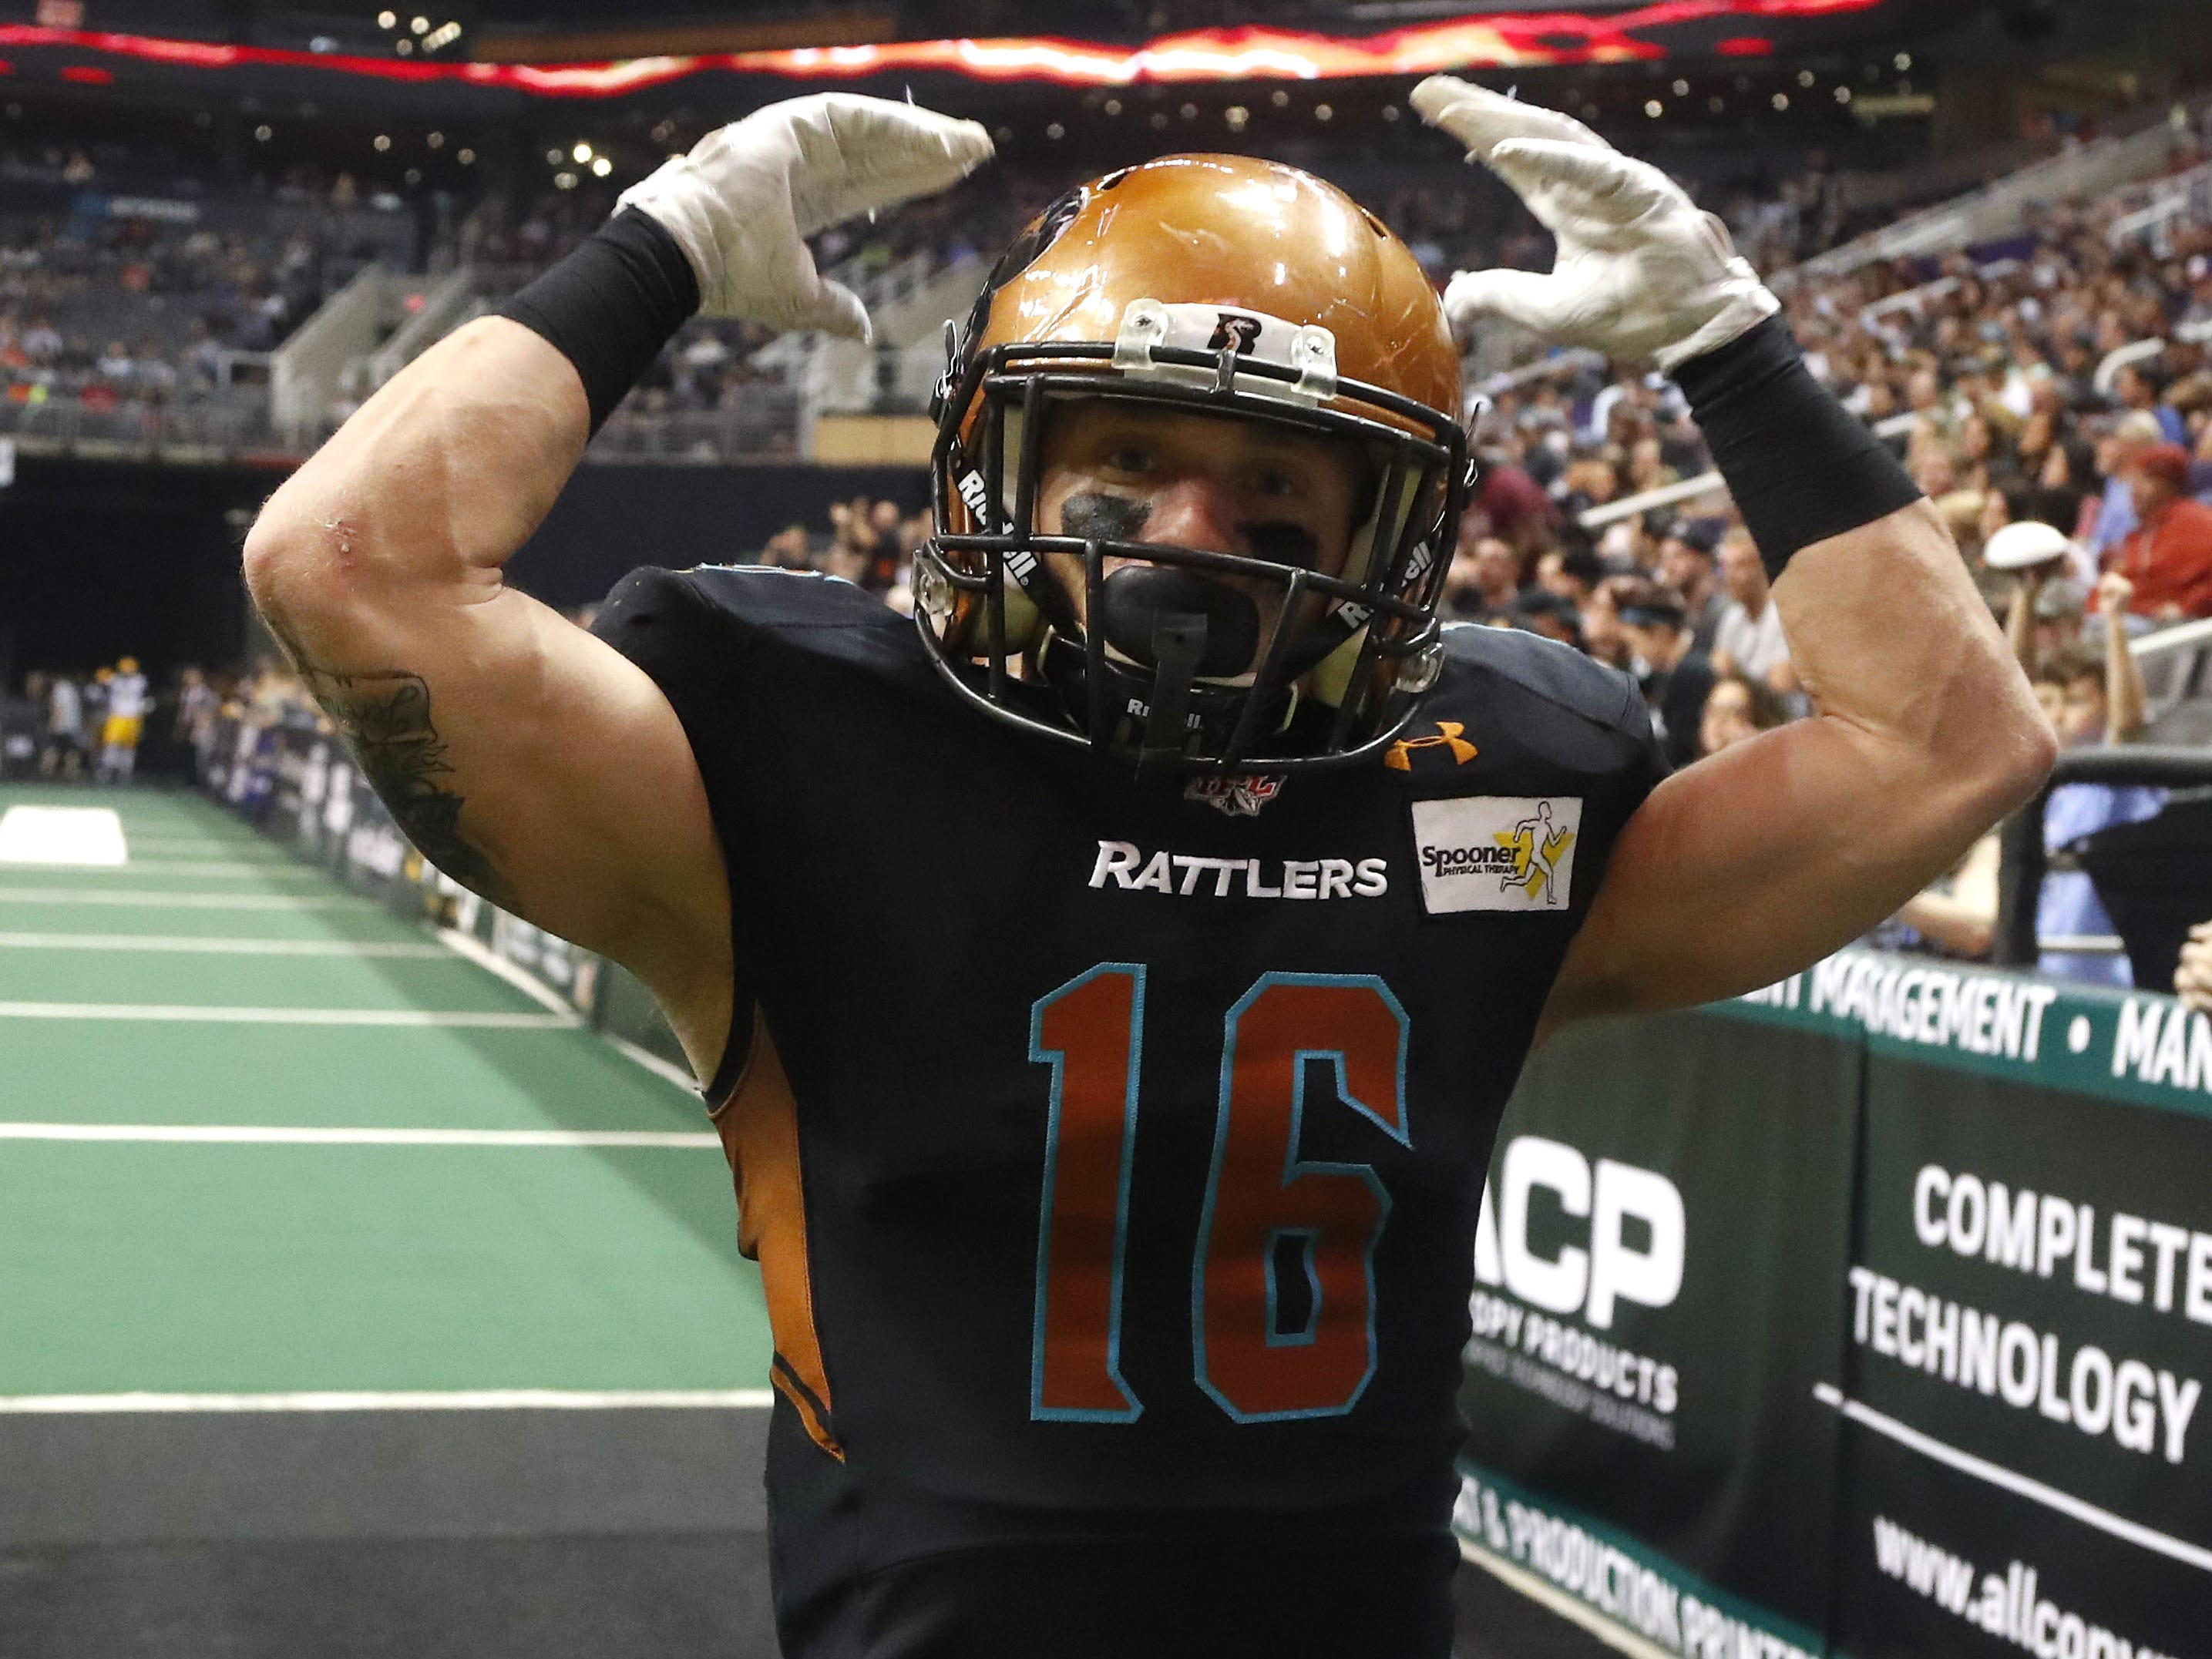 Rattlers' Jarrod Harrington (16) pumps up the fans during the second half against the Sugar Skulls at Talking Stick Resort Arena in Phoenix, Ariz. on March 16, 2019.